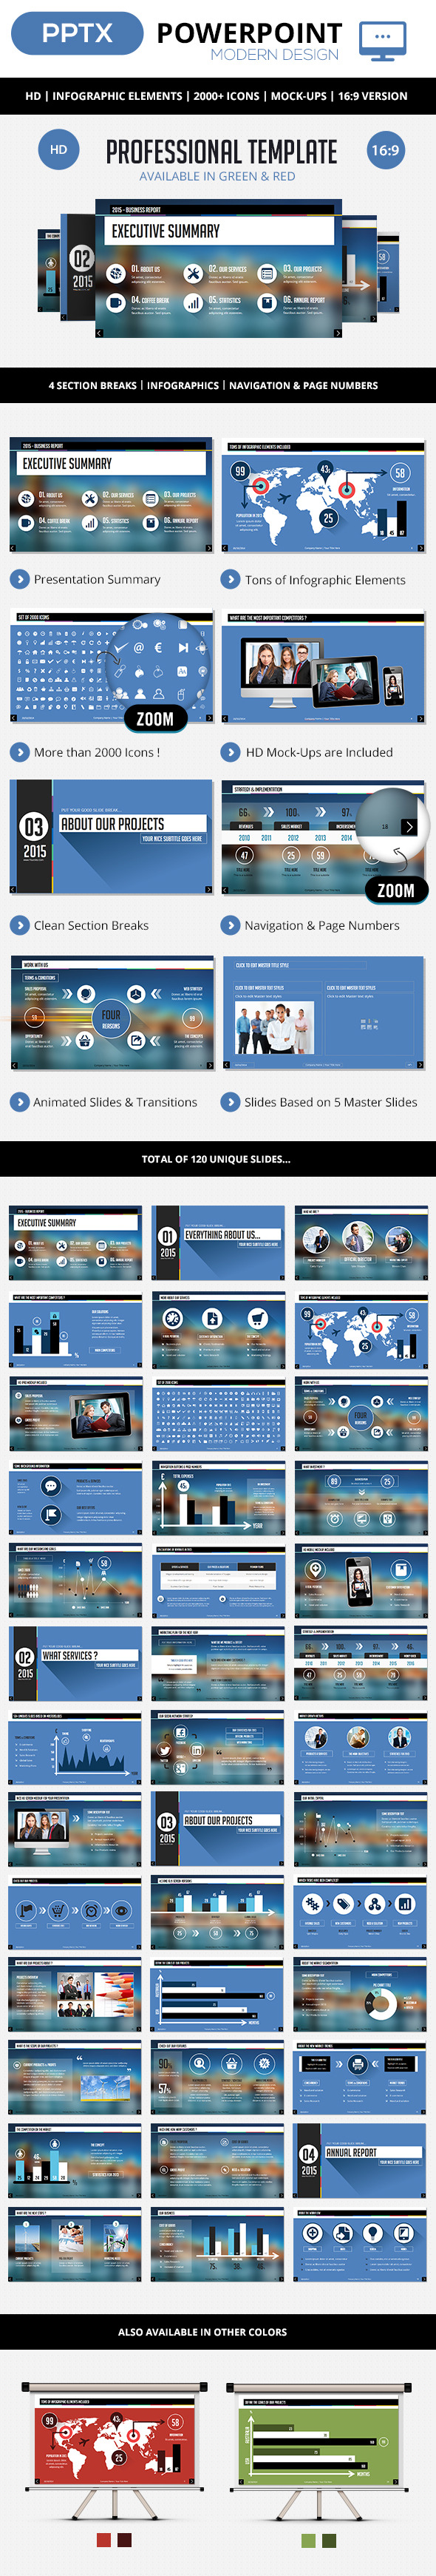 Professional PowerPoint Corporate Template - Business PowerPoint Templates